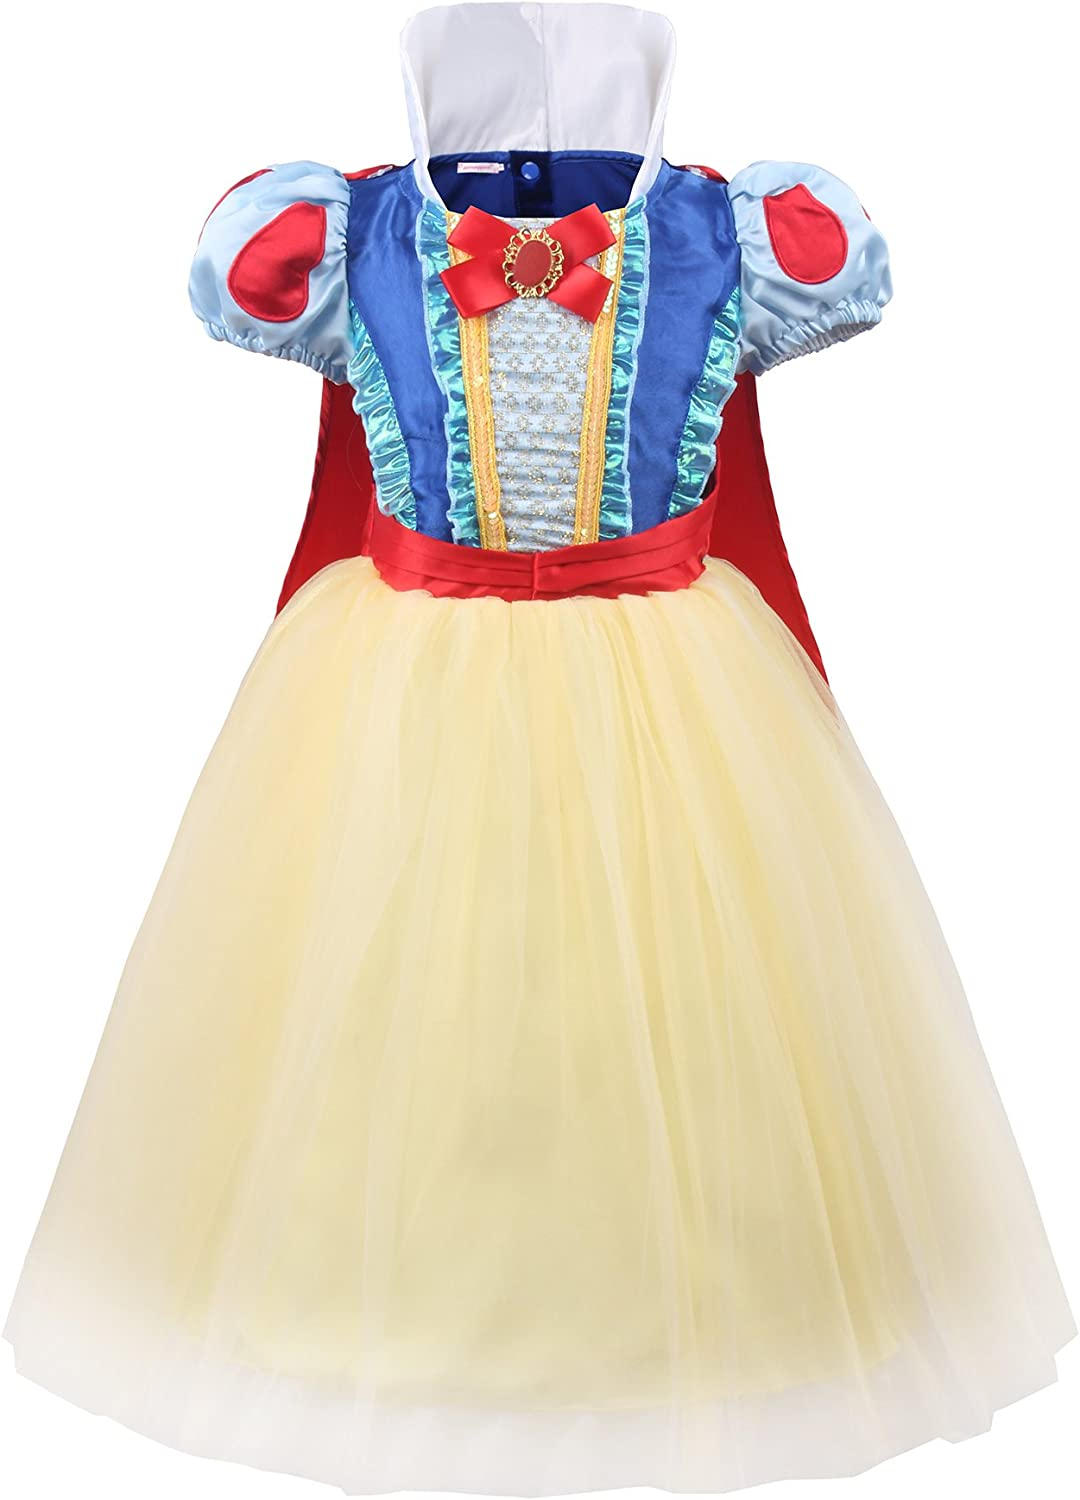 JerrisApparel Princess Dress Up Girls Party Costume Dress